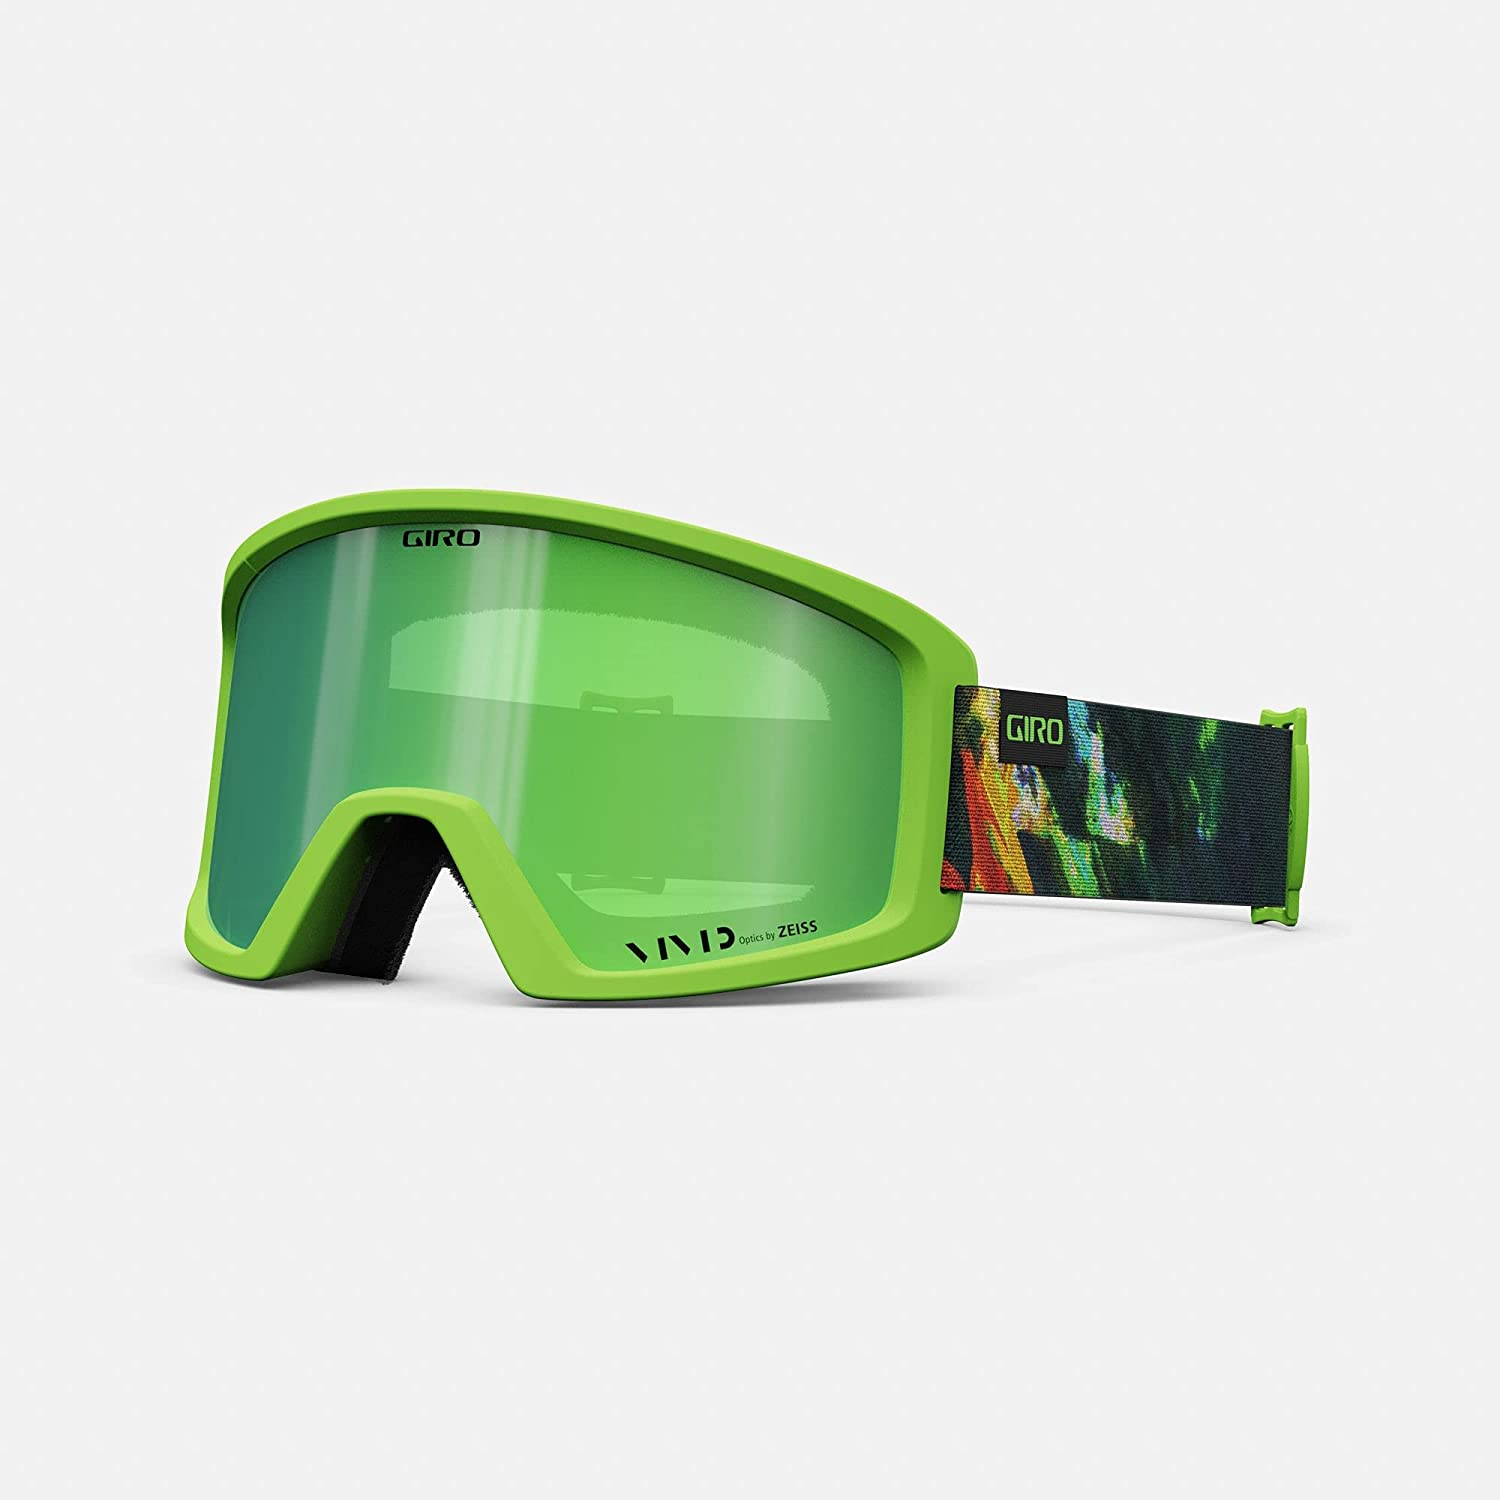 Giro Blok Adult Snow with Goggle Vivid Max High quality 59% OFF Lens